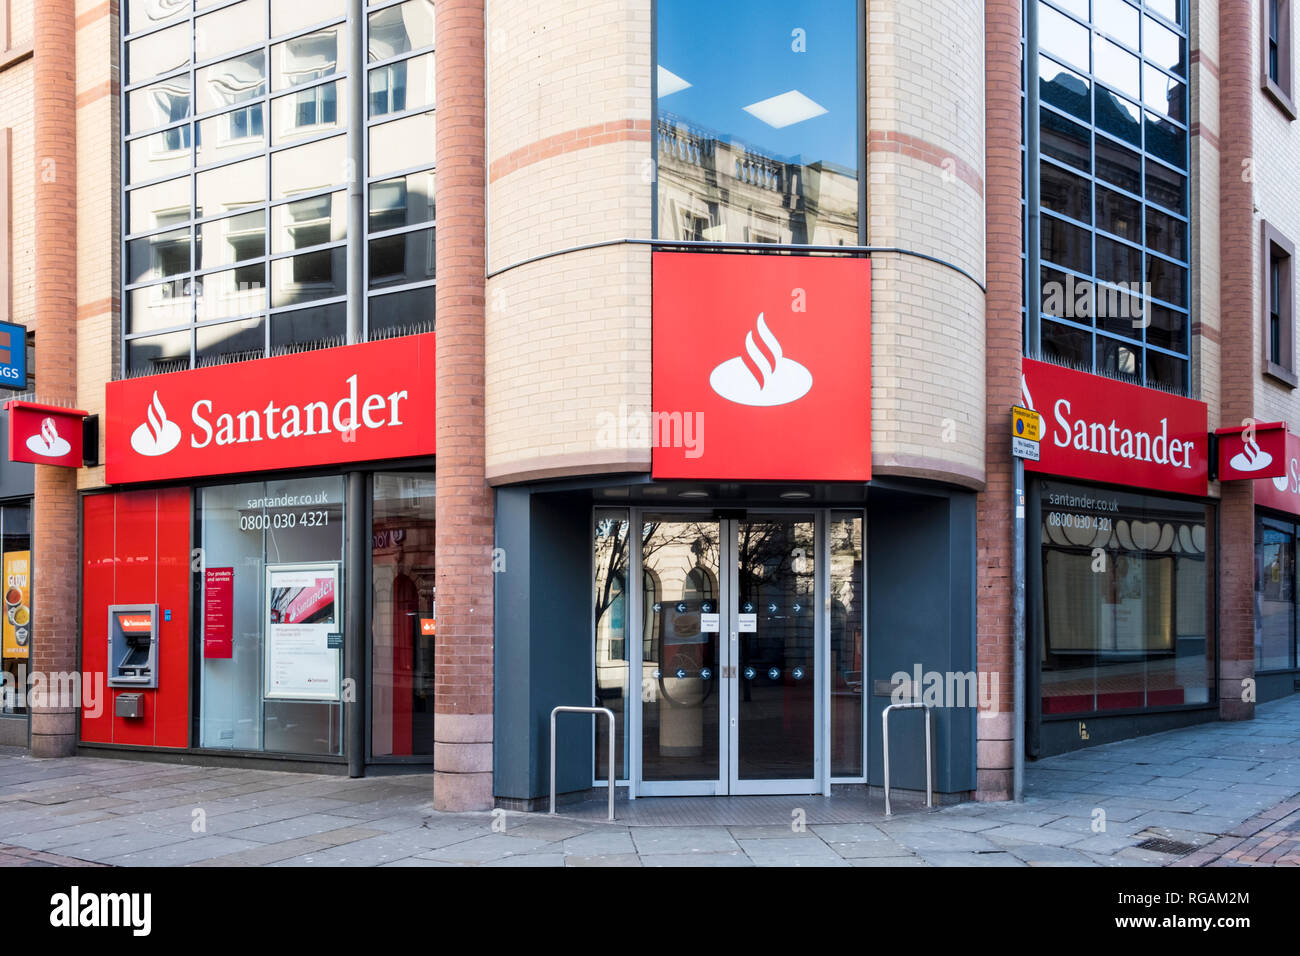 Santander Bank due to close in 2019, Nottingham, England, UK - Stock Image